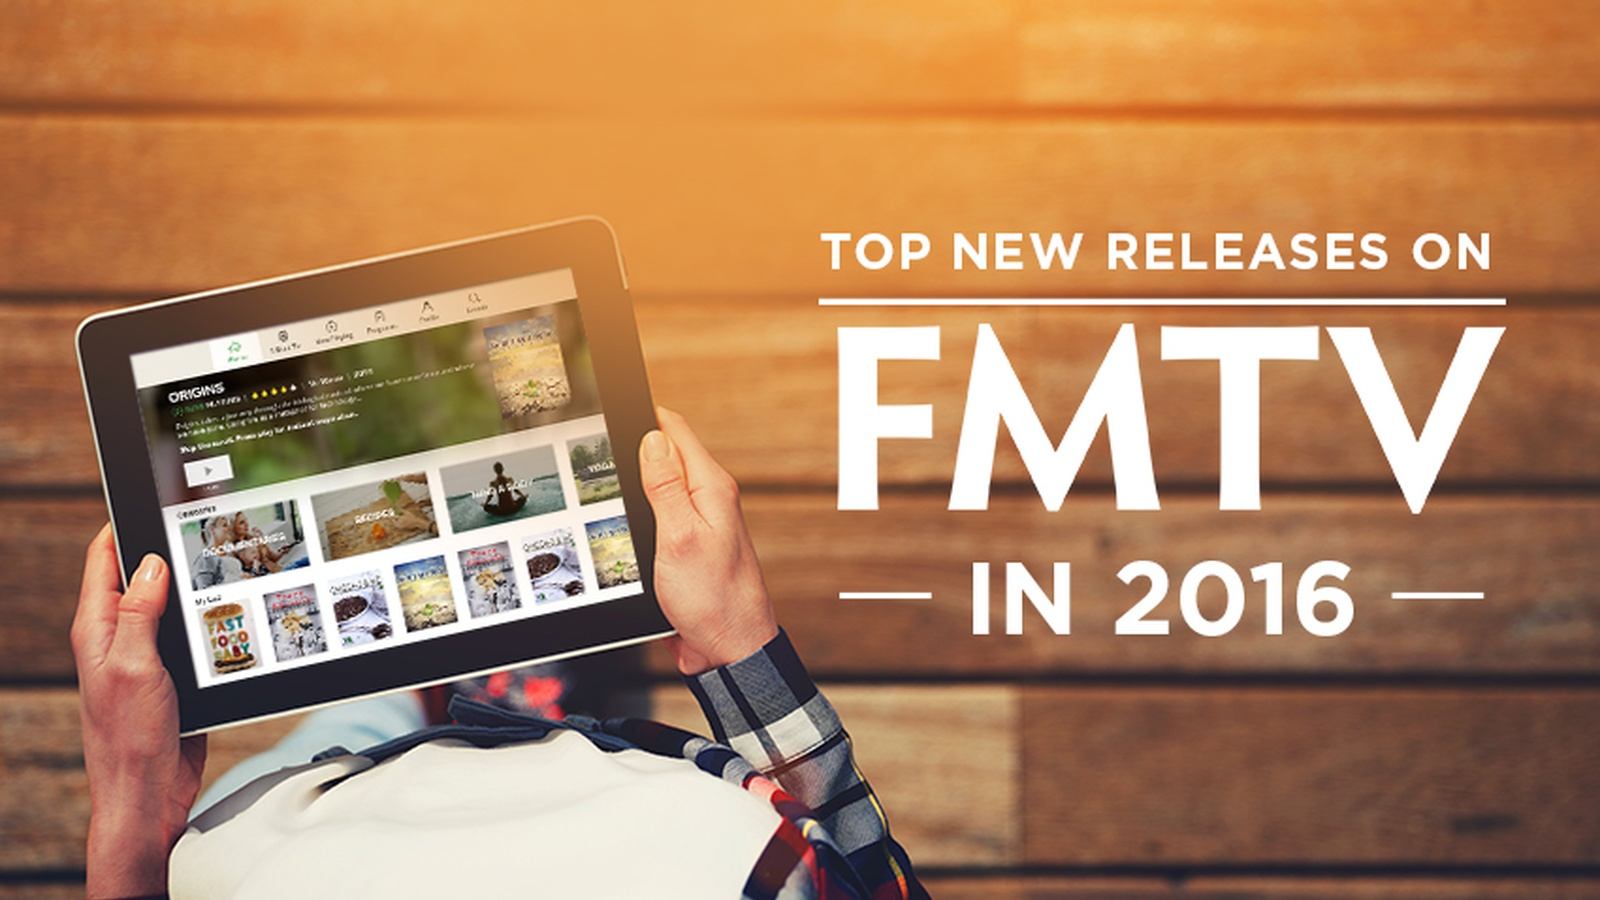 Top New Releases On FMTV in 2016